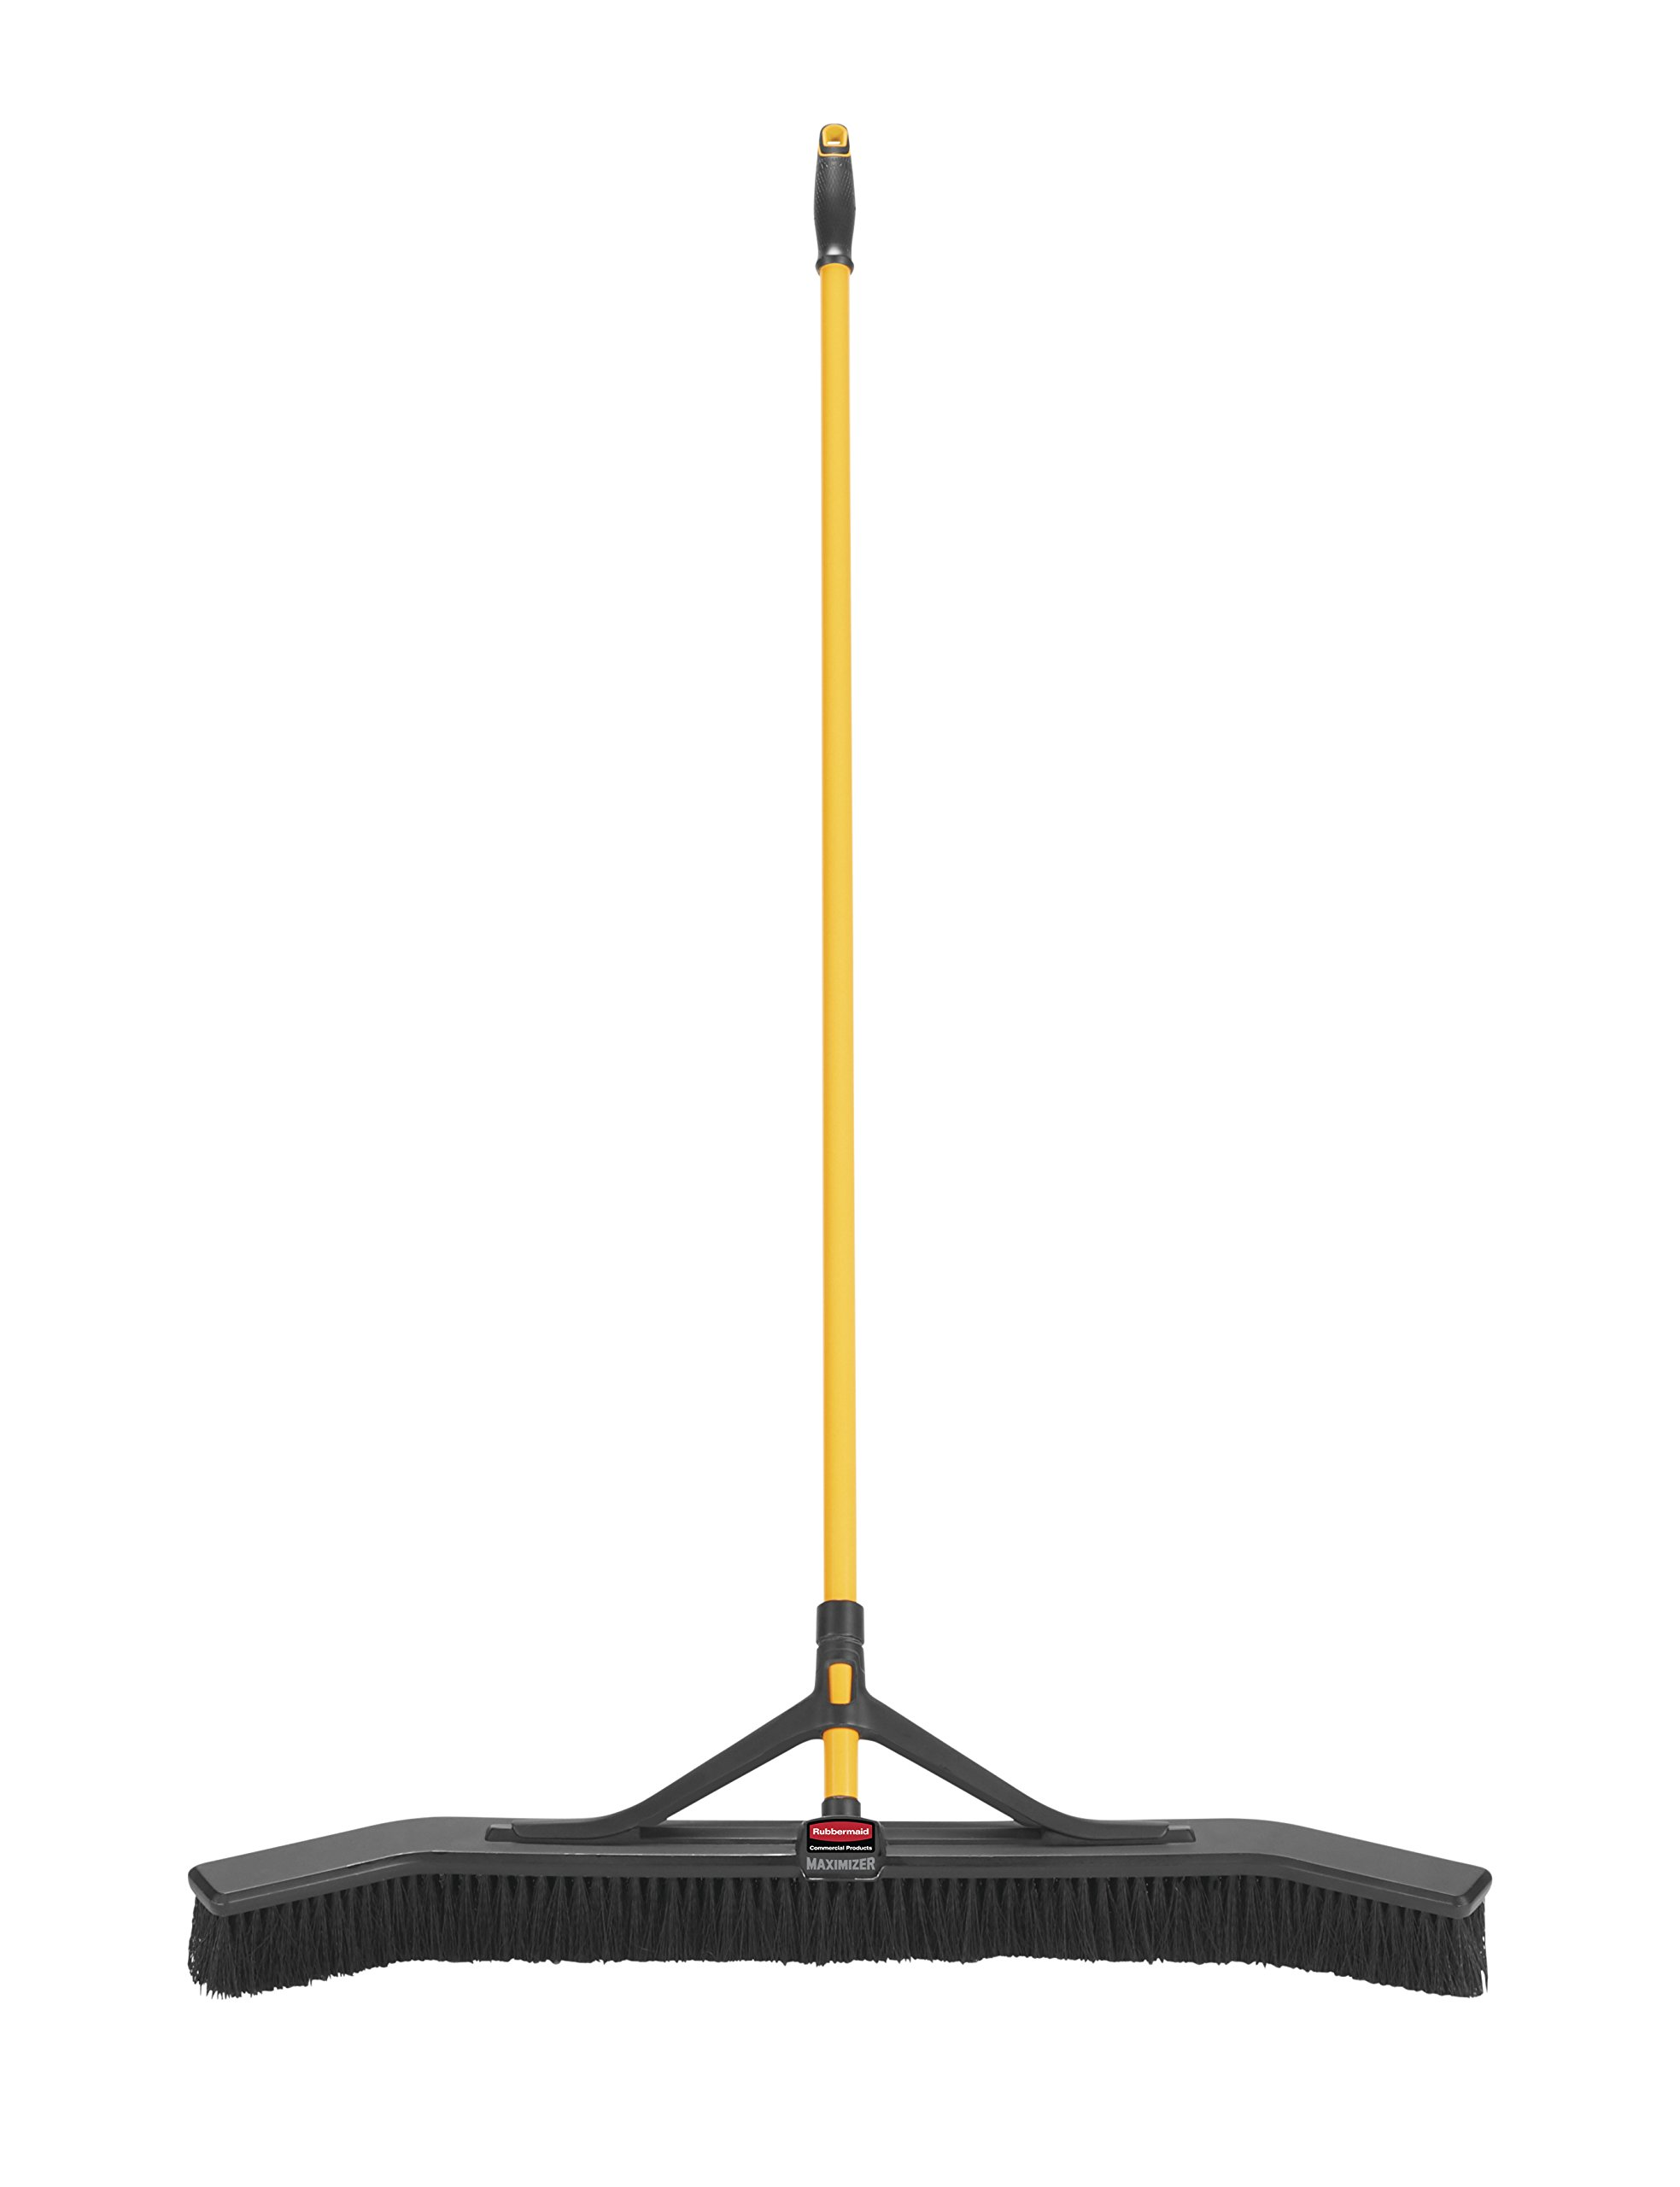 Rubbermaid Commercial Products Maximizer Push-to-Center Broom with Multi-Purpose Bristle, 36'' Wide, Black (2018728)